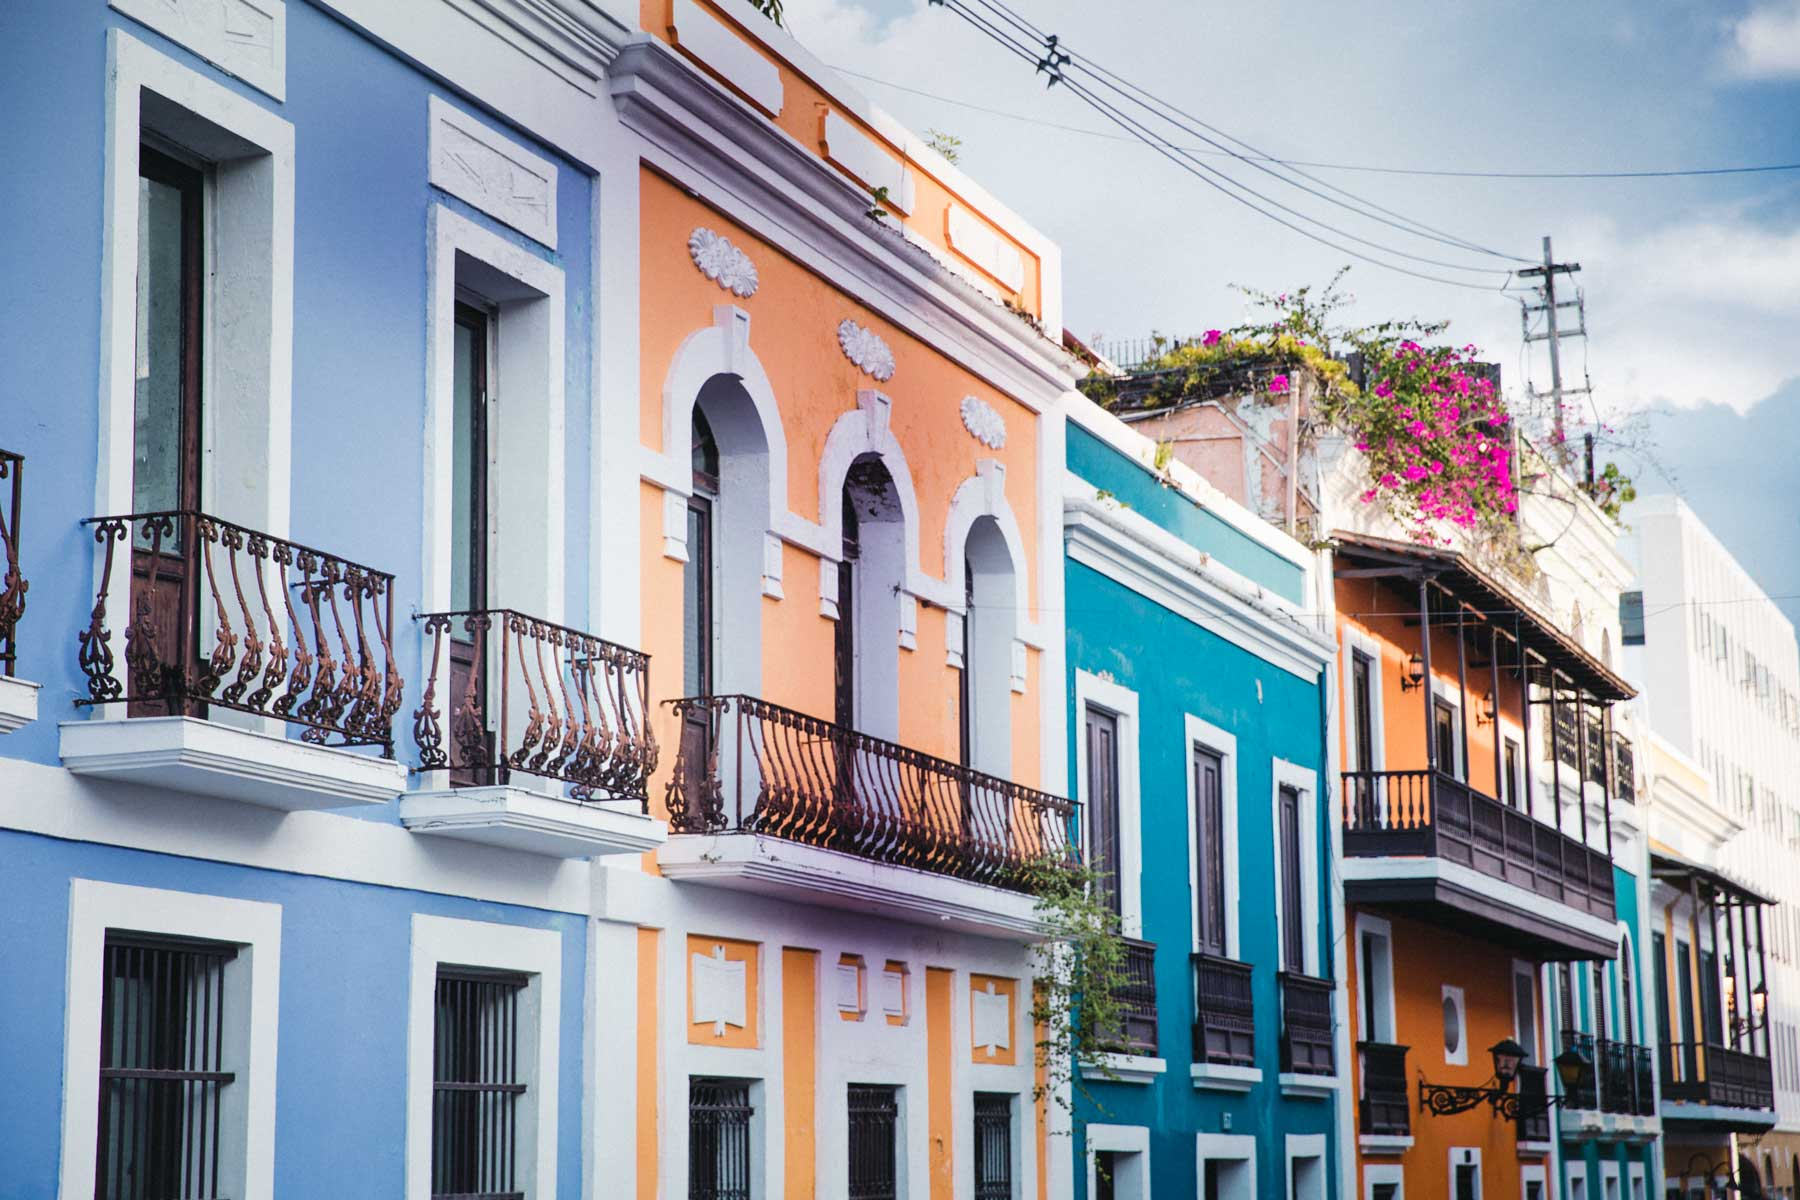 Colorful traditional buildings in Old San Juan, Puerto Rico